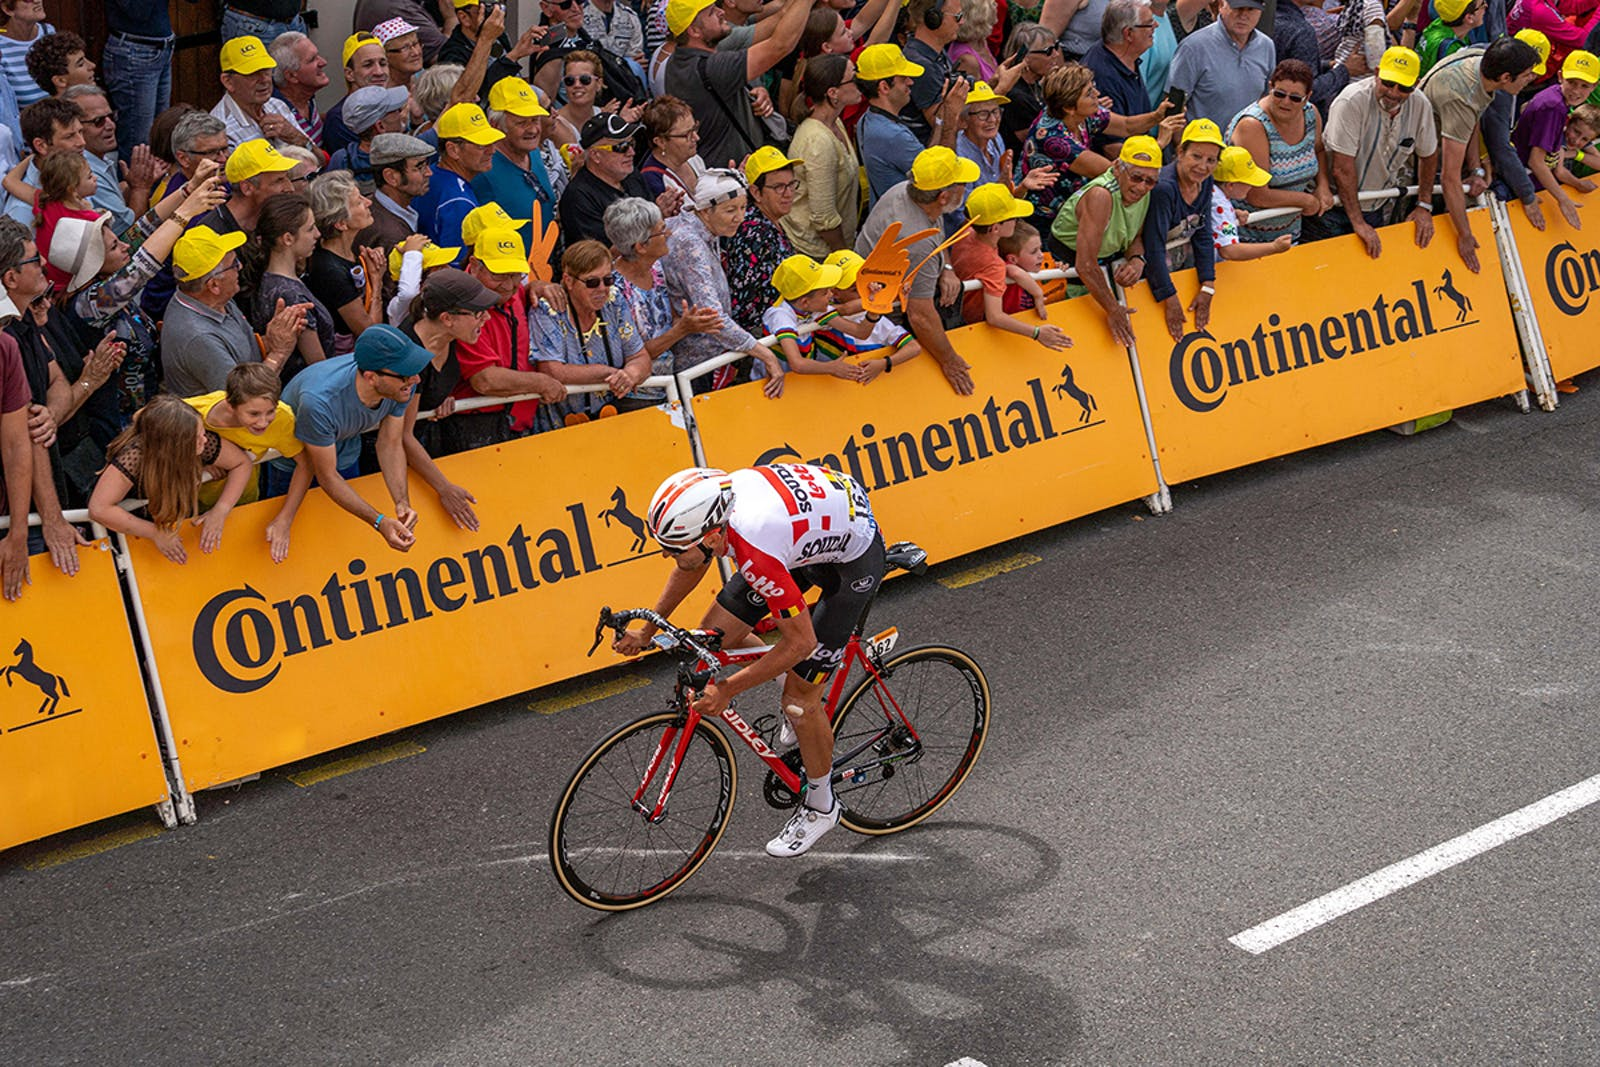 Thomas De Gendt's team mate Tiesj Benoot drills it for the finish